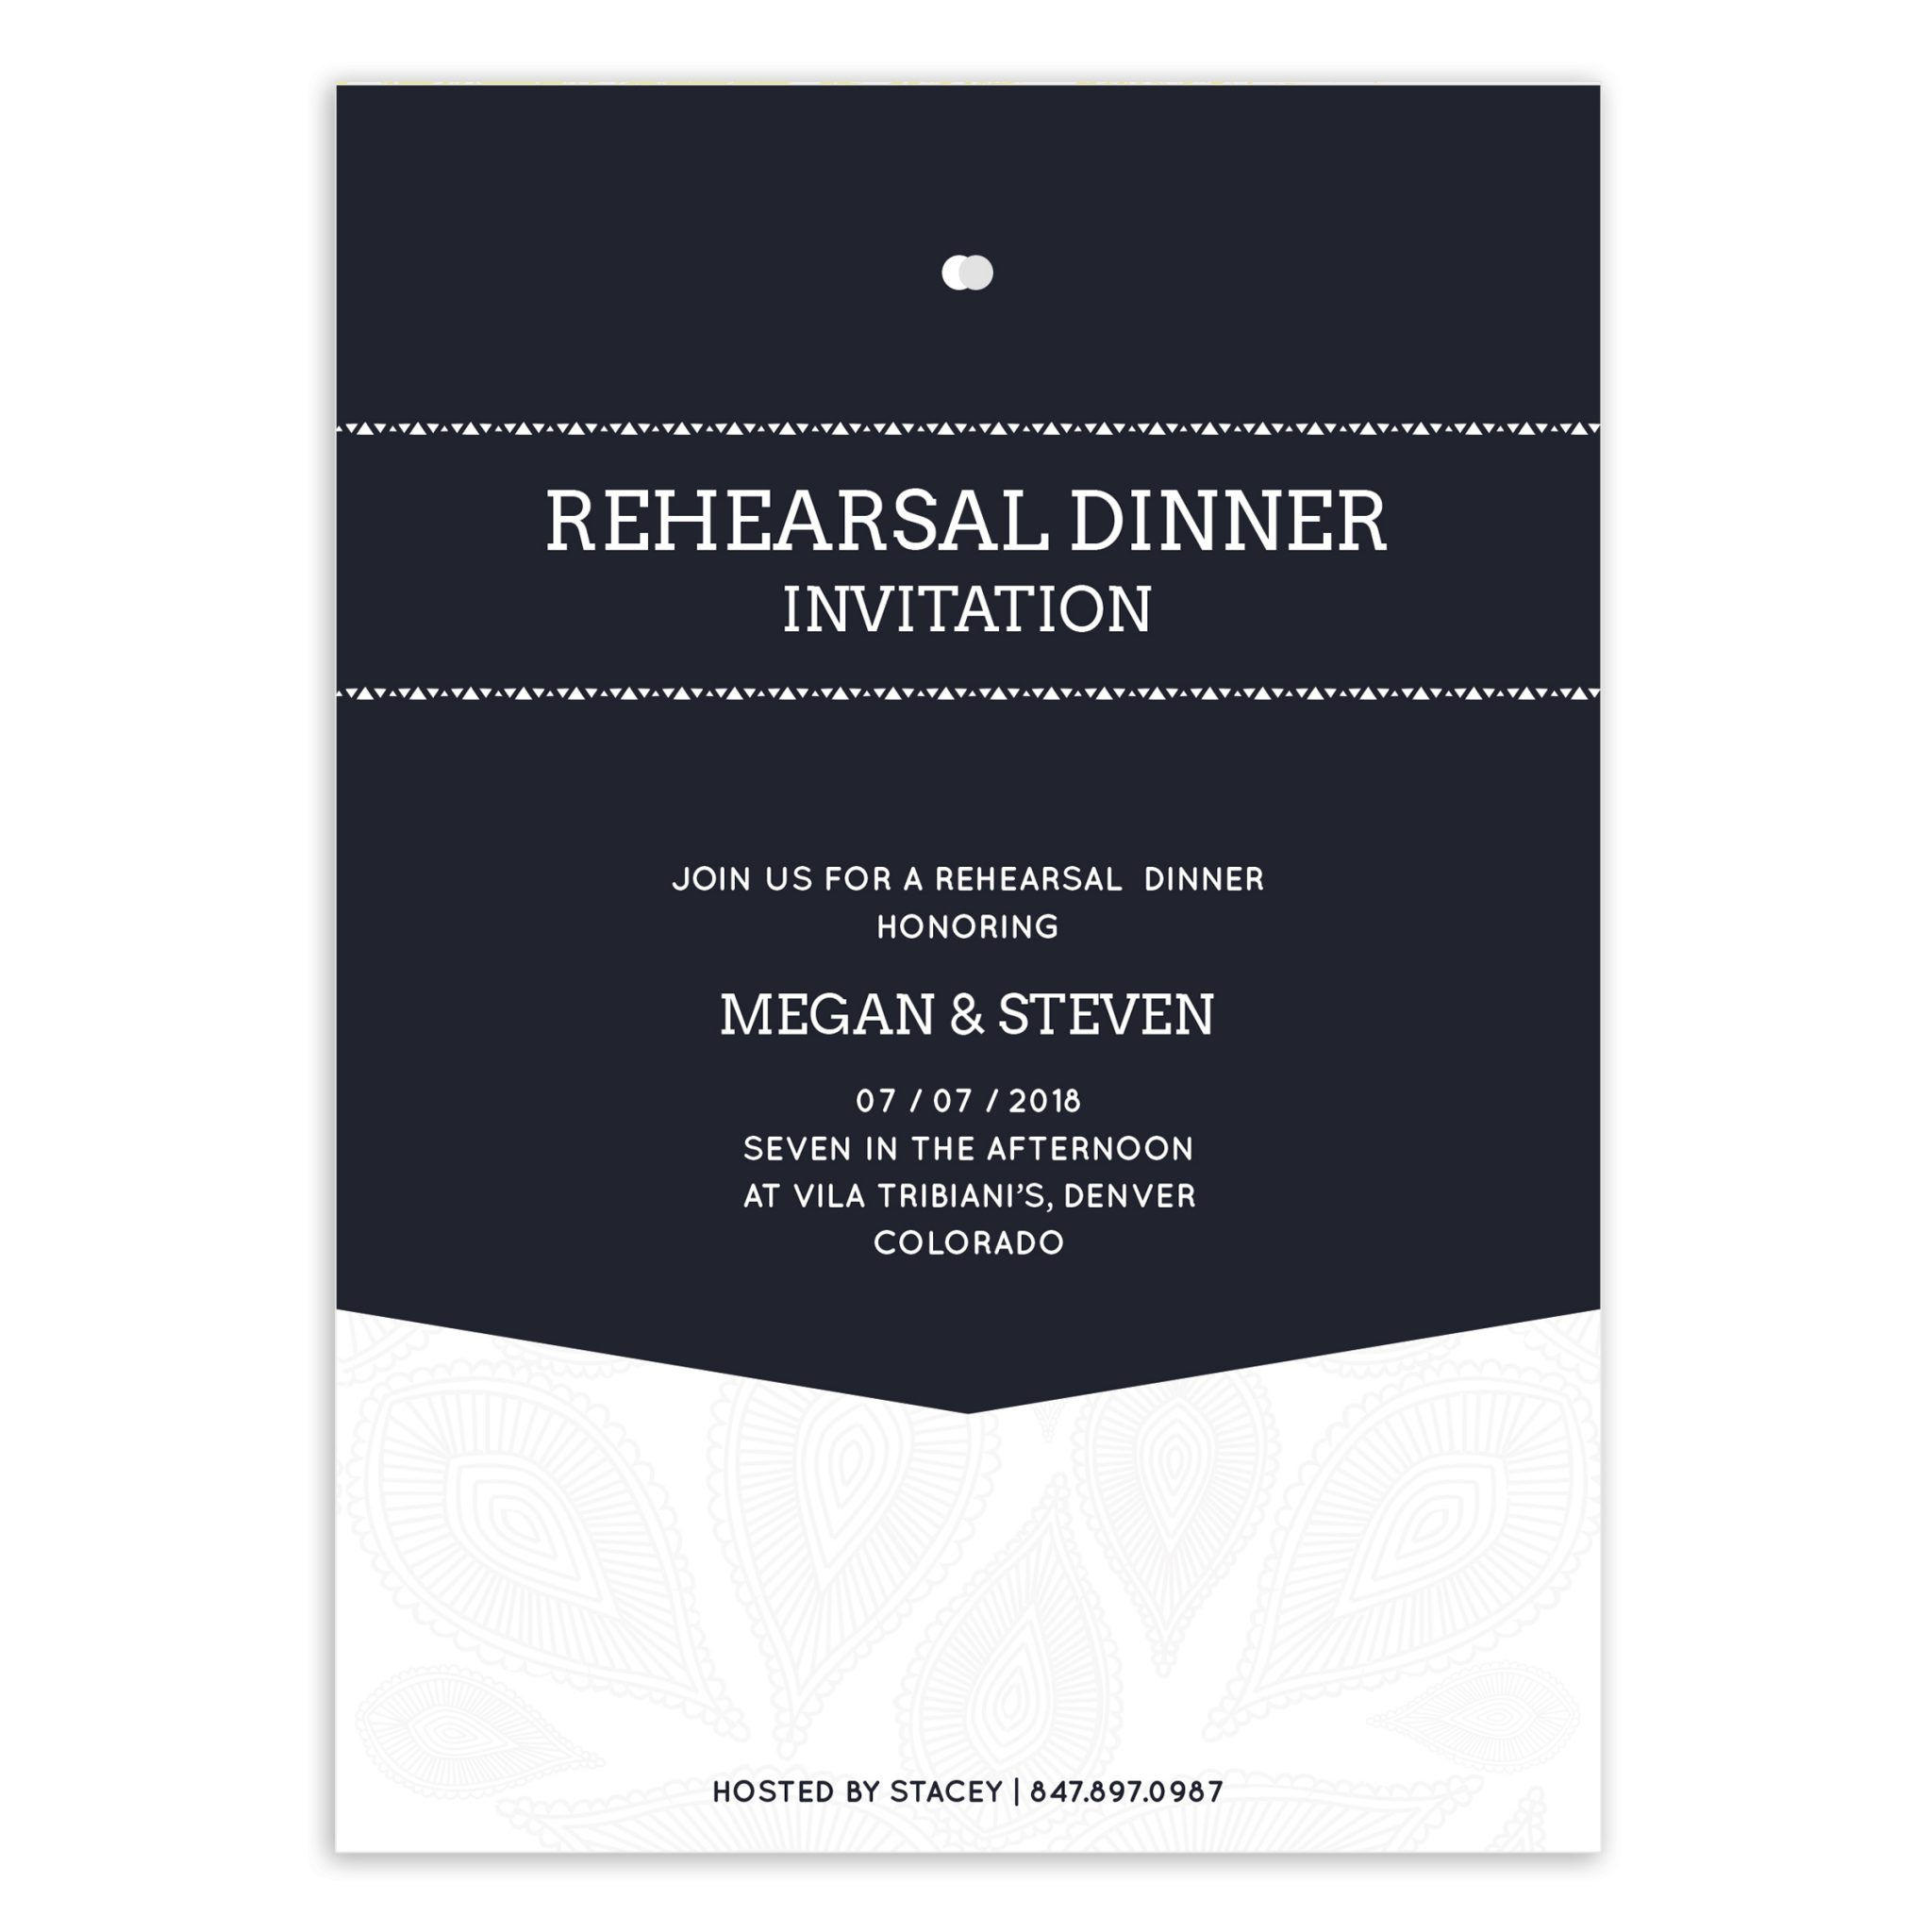 Wedding Rehearsal Invitation PSD Template